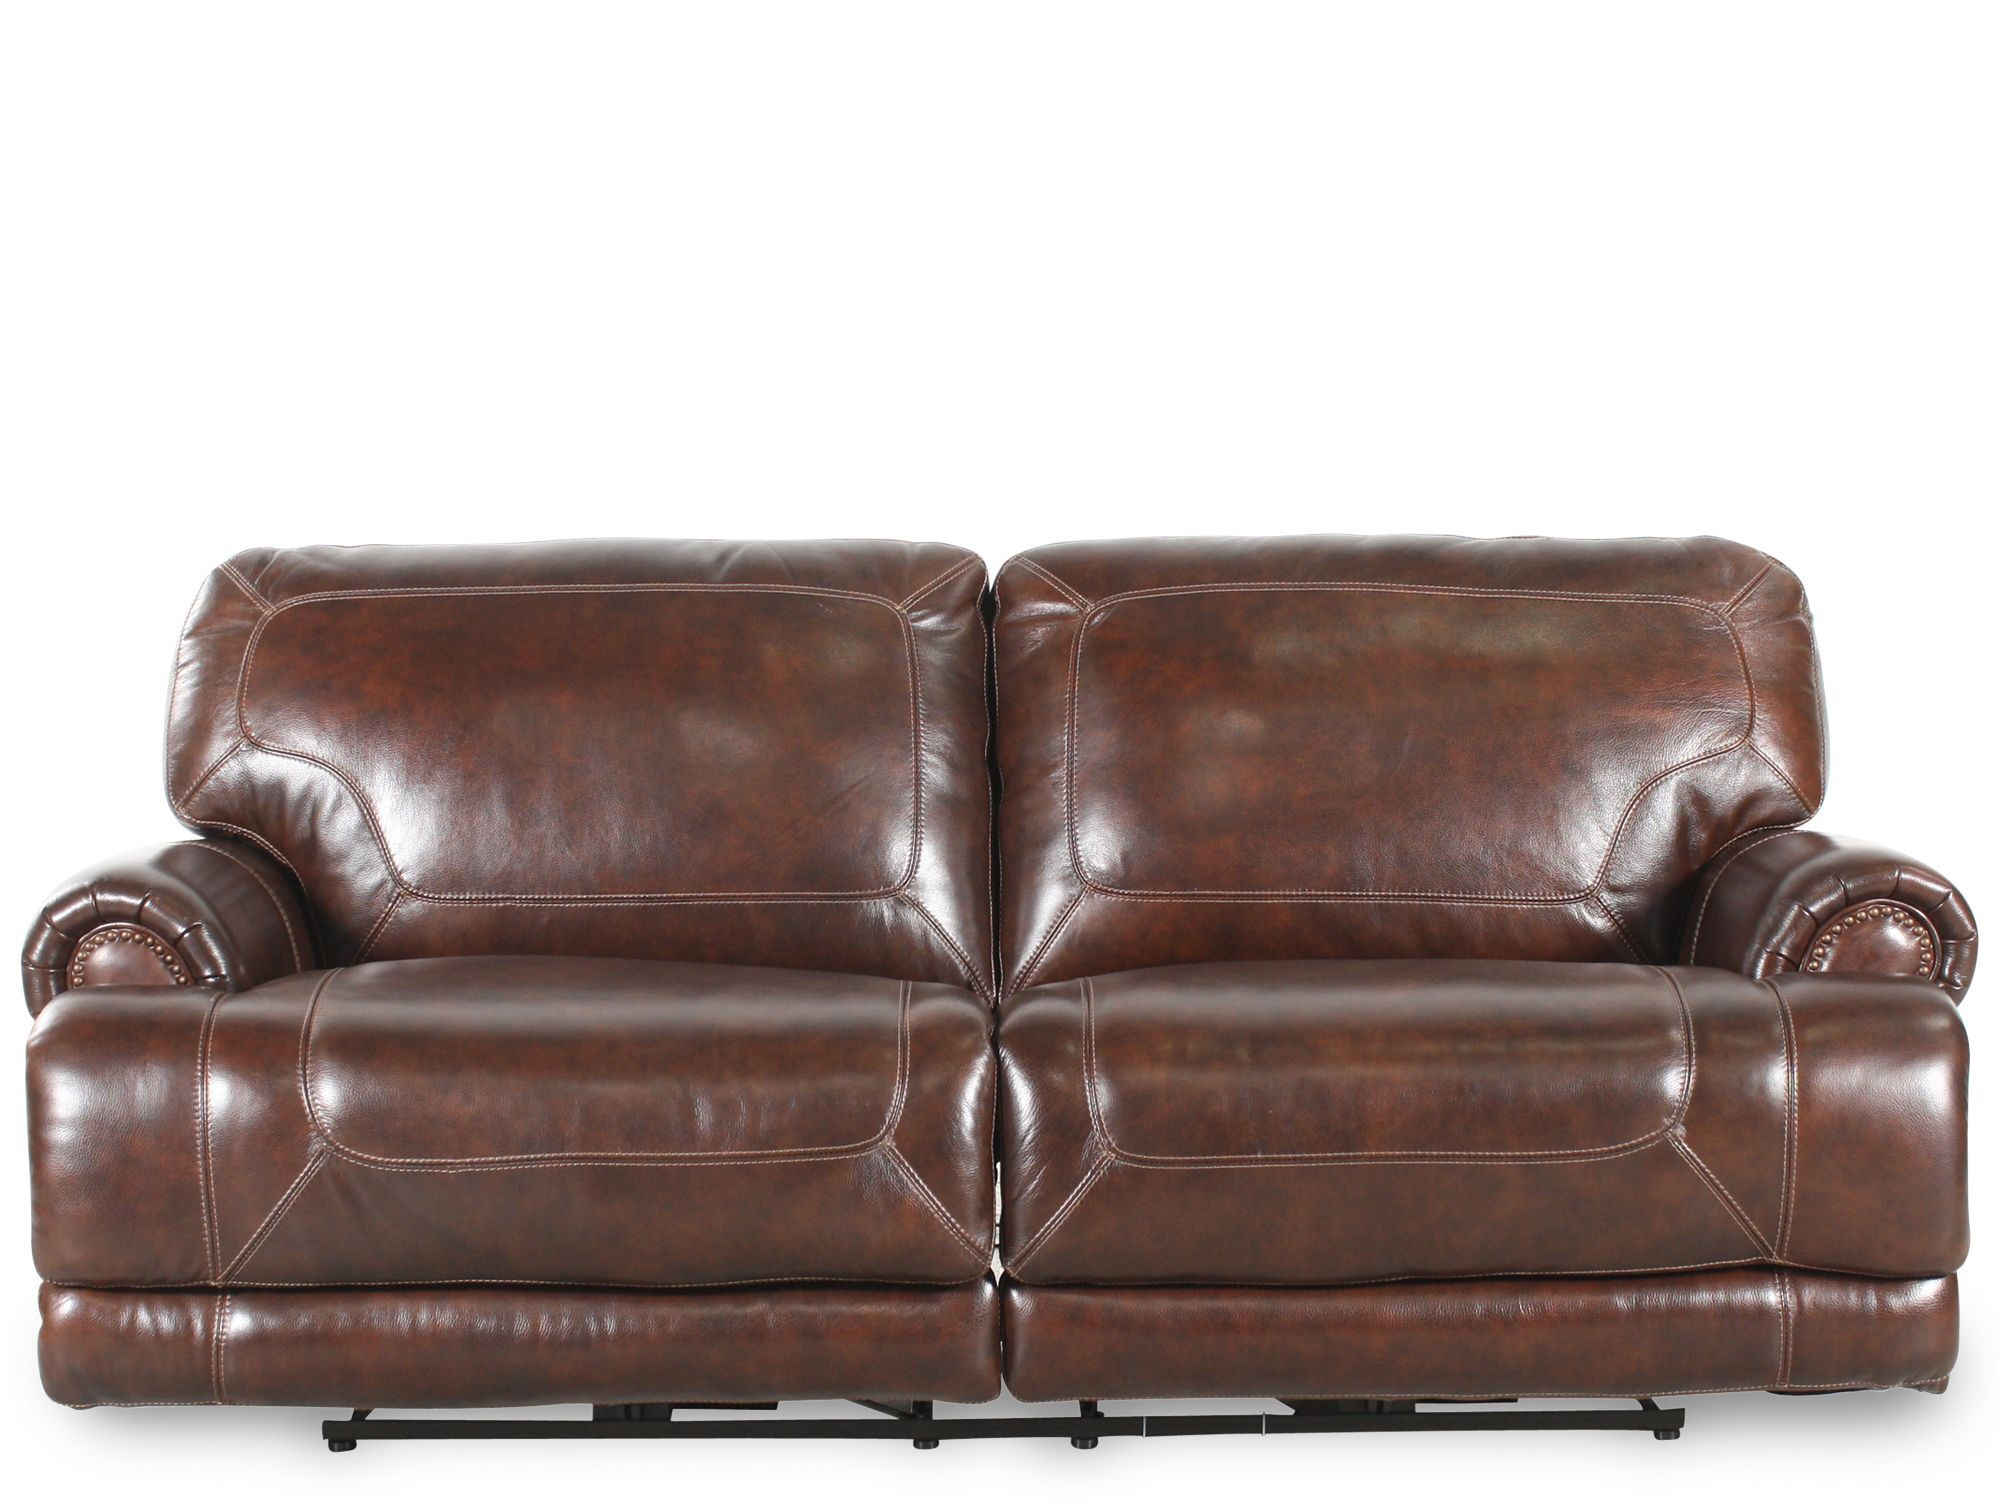 reclining sofa leather brown corner unit sofas uk 86 quot in mathis brothers